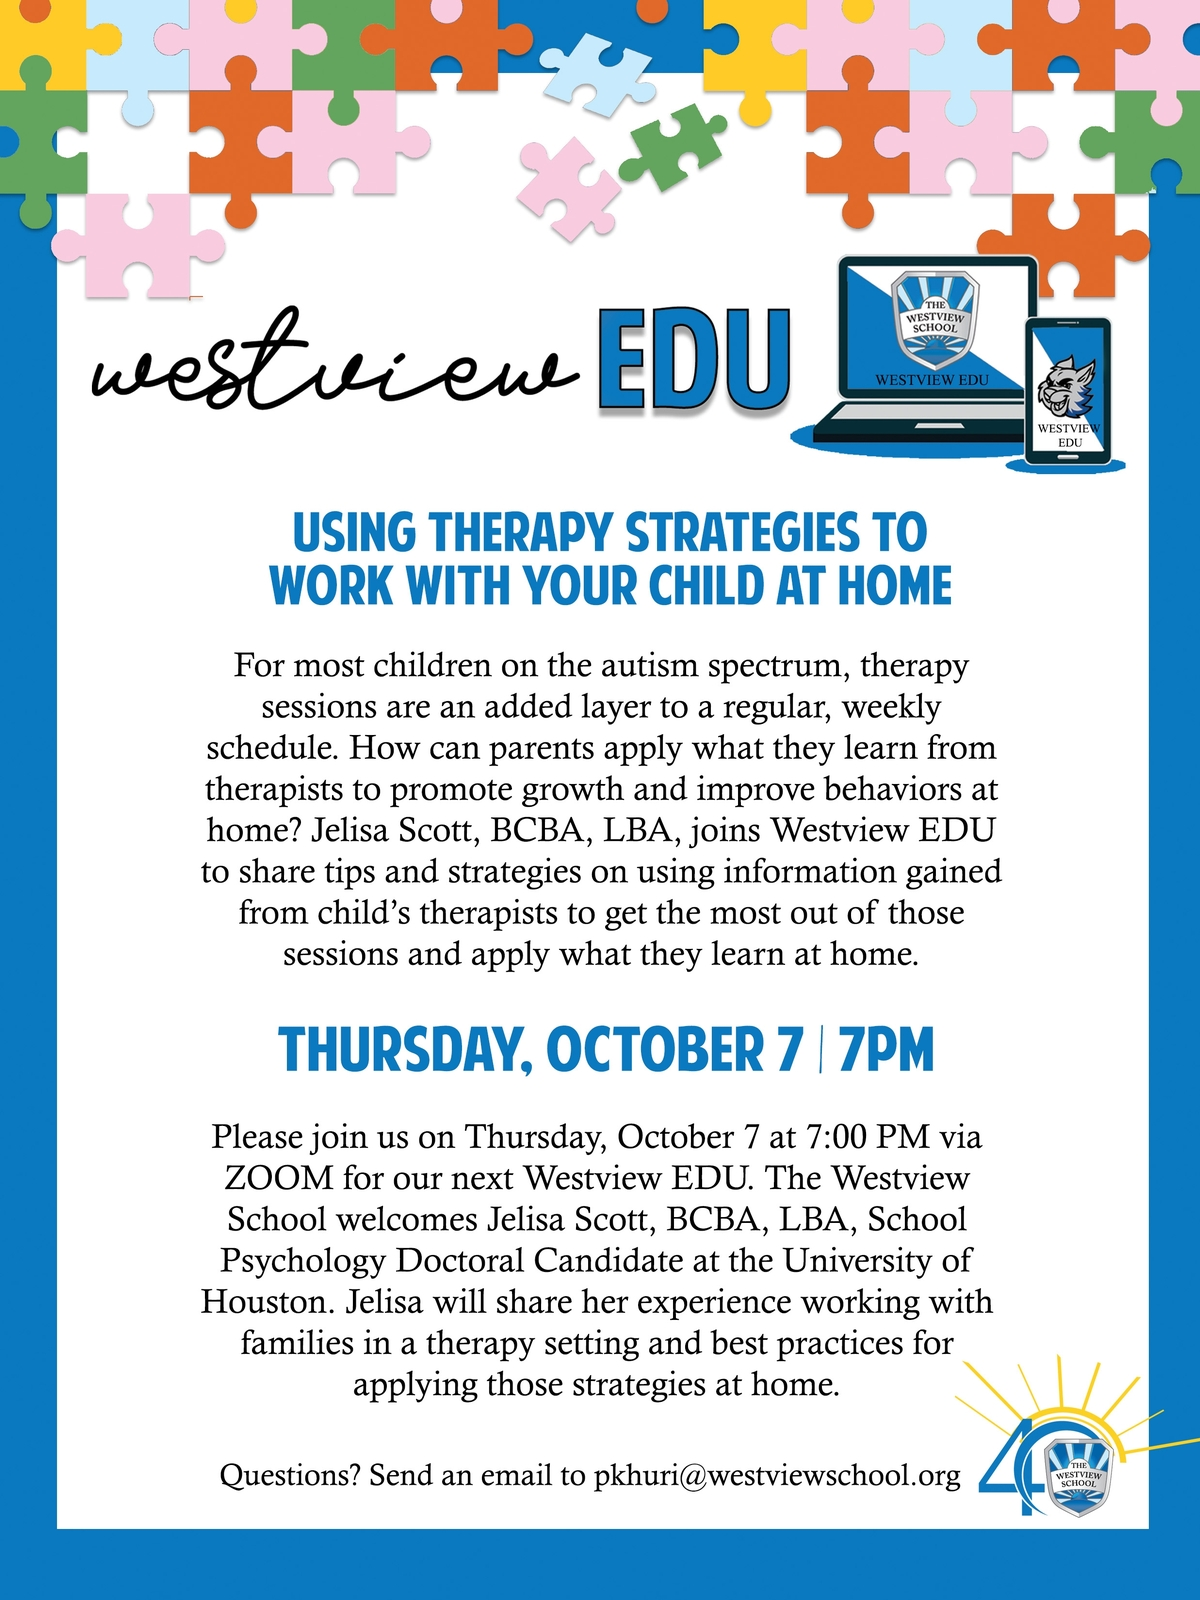 WestviewEDU: Using Therapy Strategies to Work with Your Child at Home